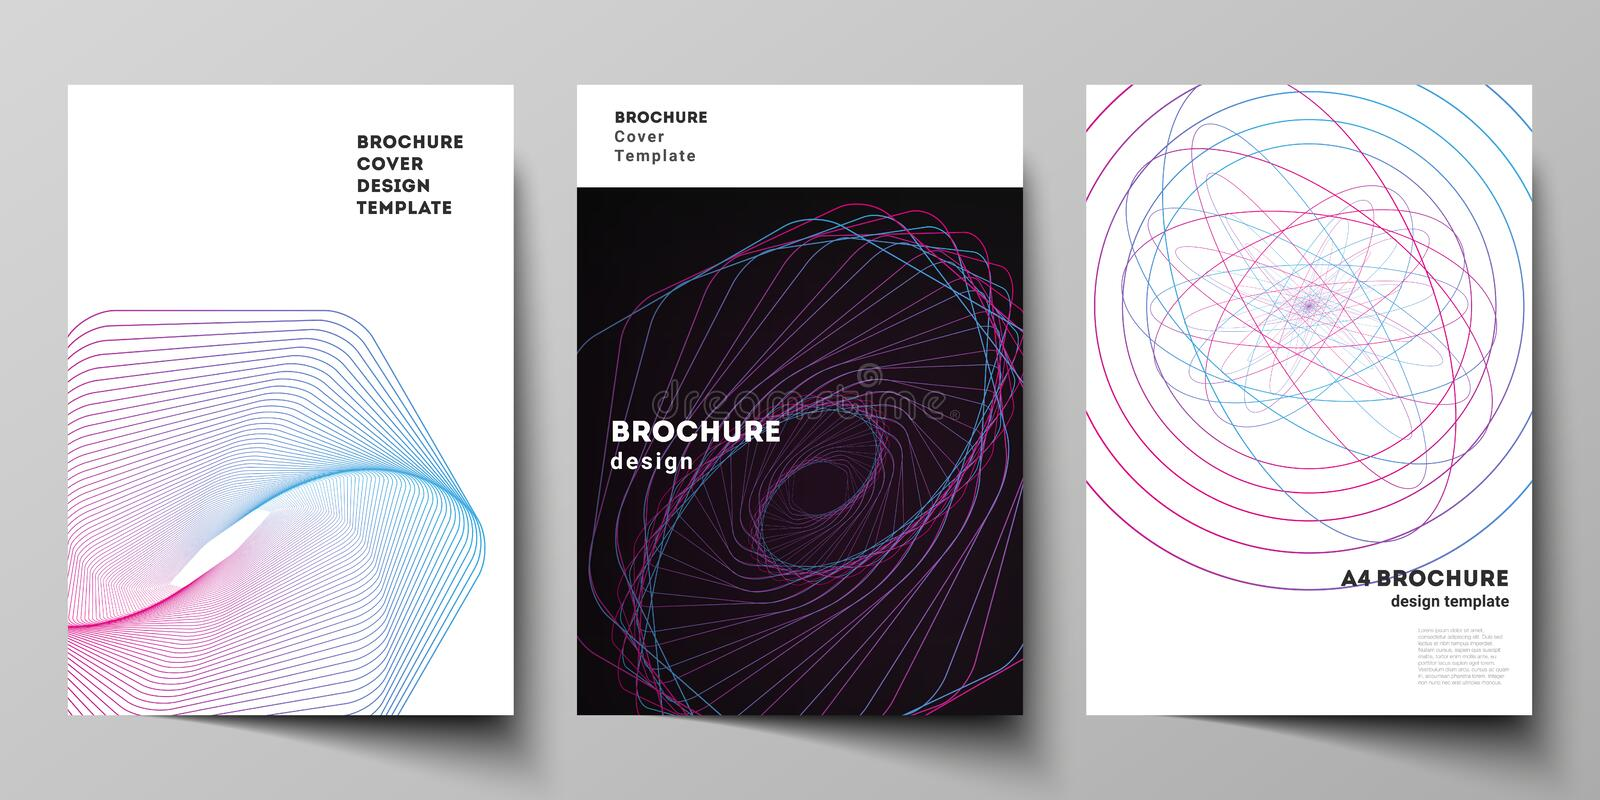 Vector layout of A4 format cover mockups design templates for brochure, flyer, booklet, report. Random chaotic lines. That creat real shapes. Chaos pattern royalty free illustration